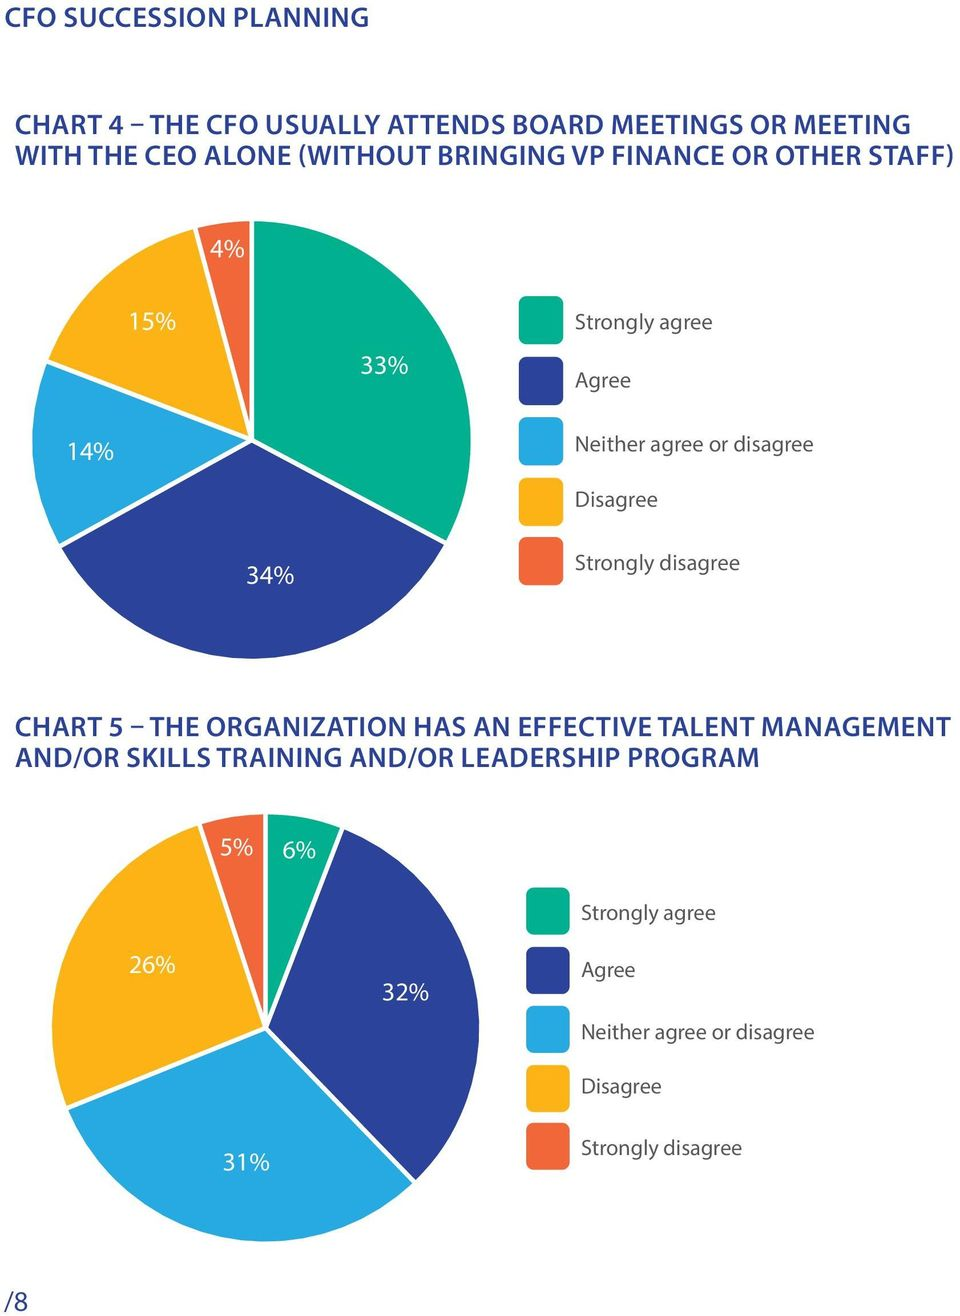 Strongly disagree Chart 5 The organization has an effective talent management and/or skills training and/or